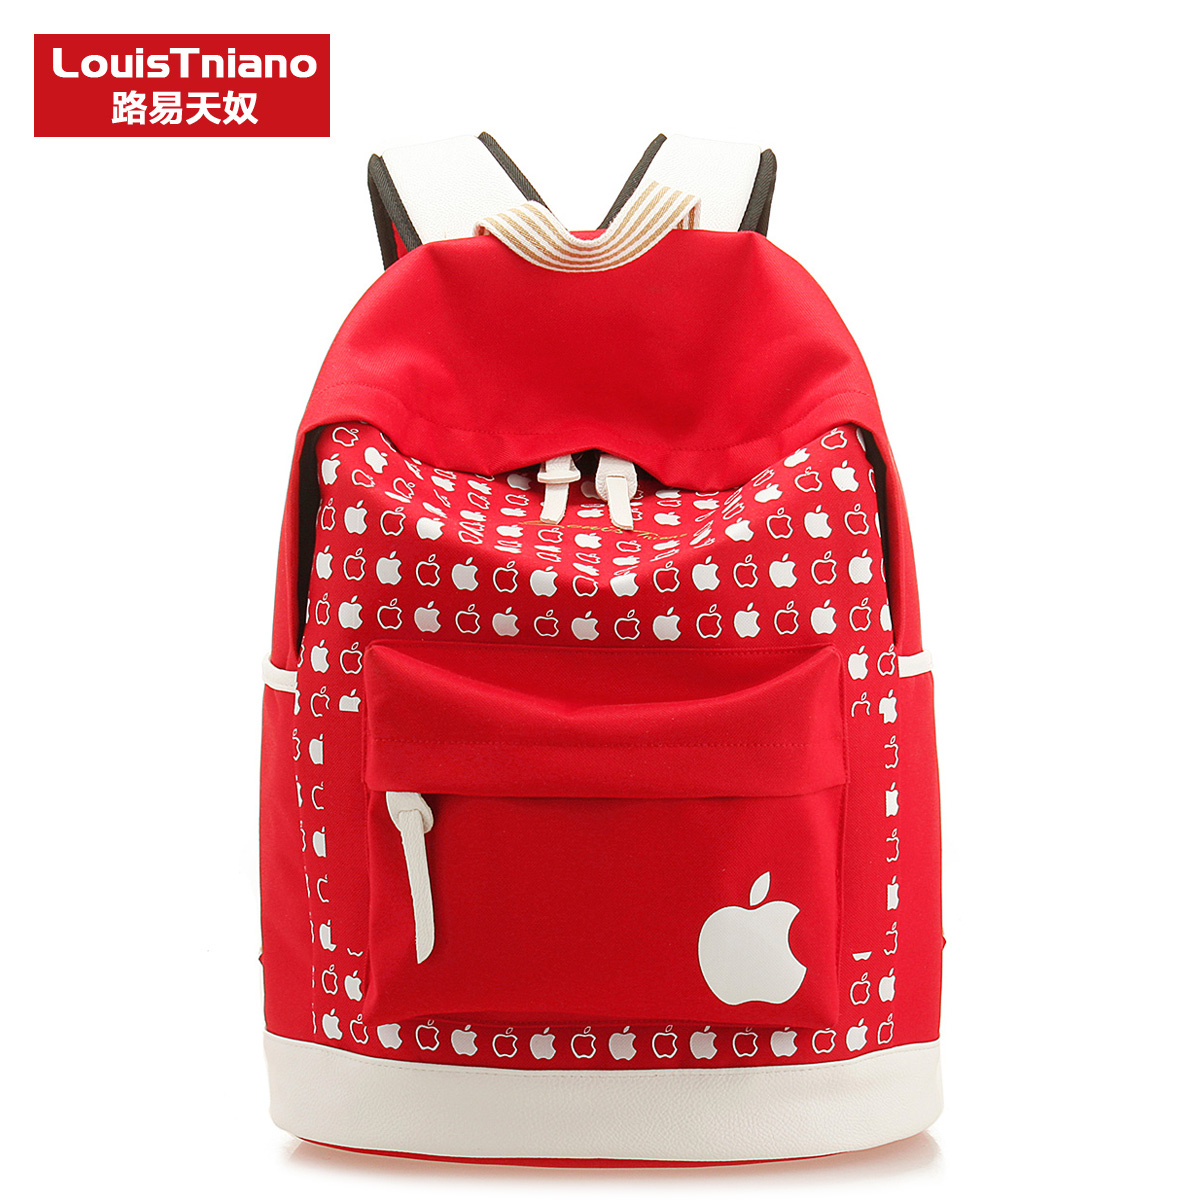 Pretty Backpacks For School IyCpAp0j